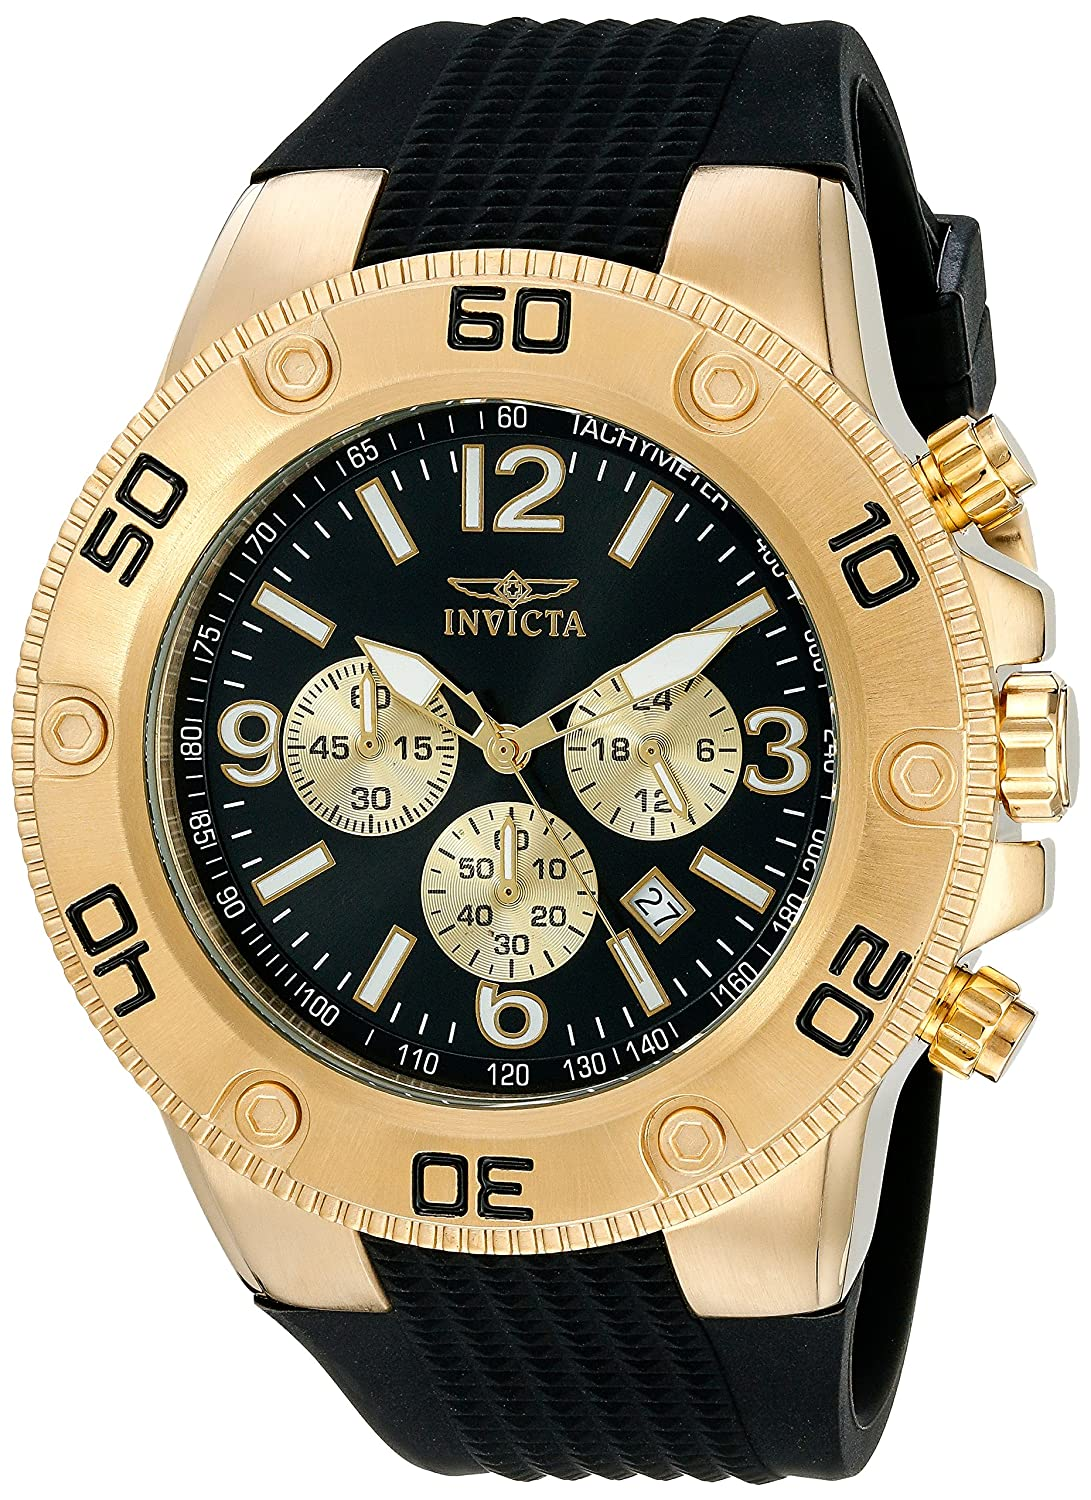 Amazon.com: Invicta Men's 20275 Pro Diver Gold-Tone Stainless Steel Watch:  Watches